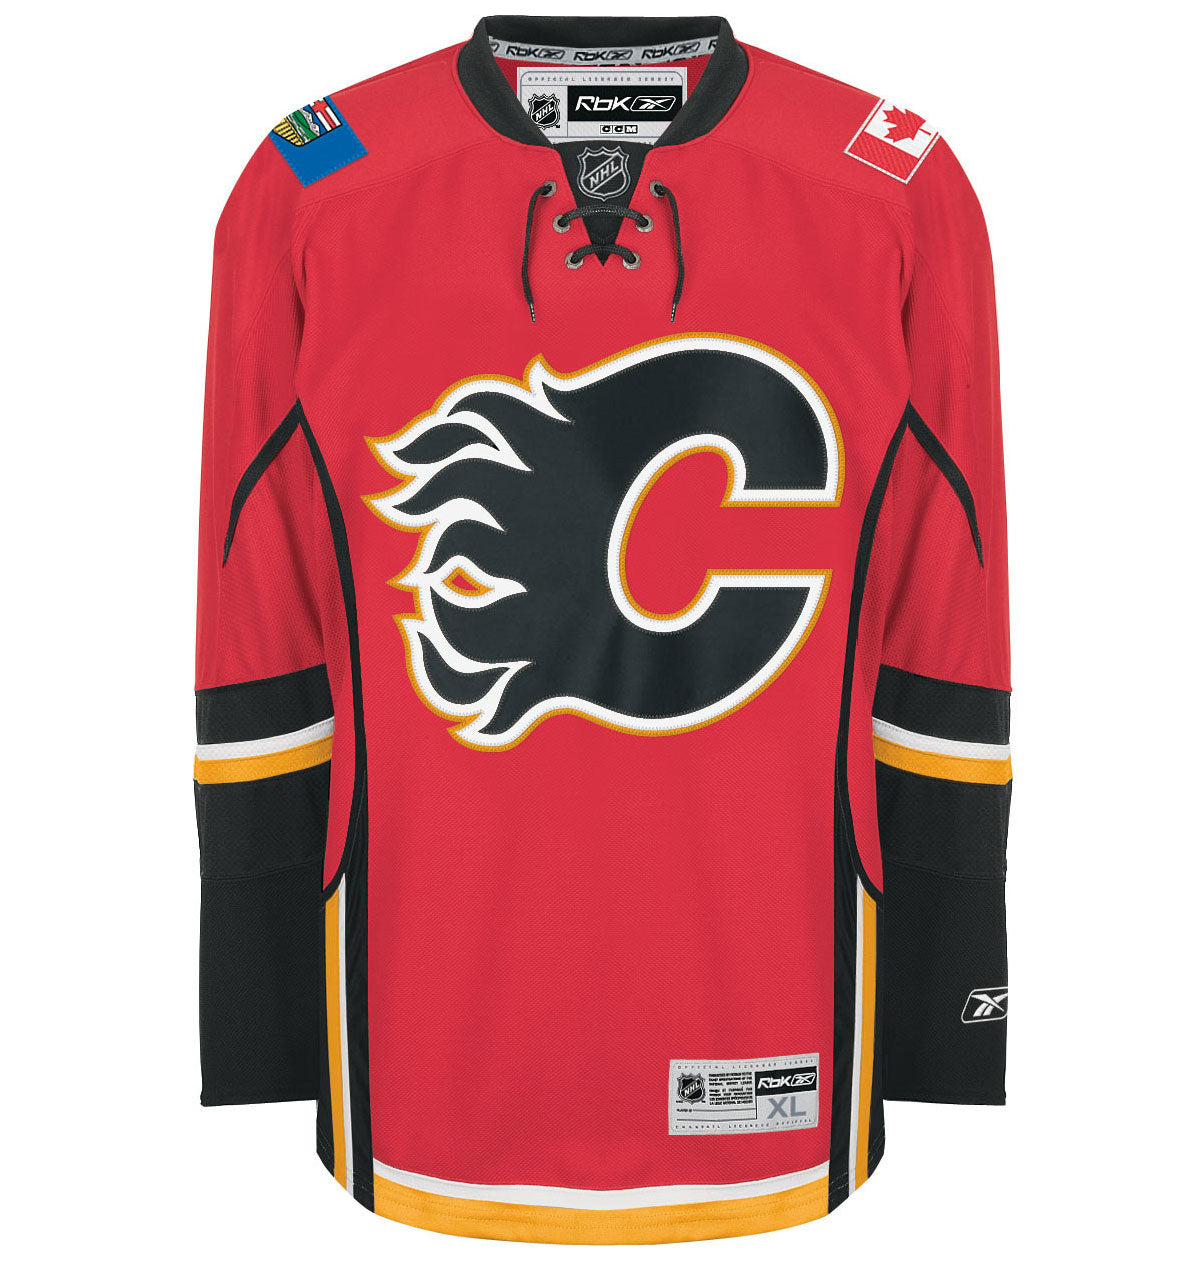 Alternate A Official Patch For Calgary Flames Home 2003 16